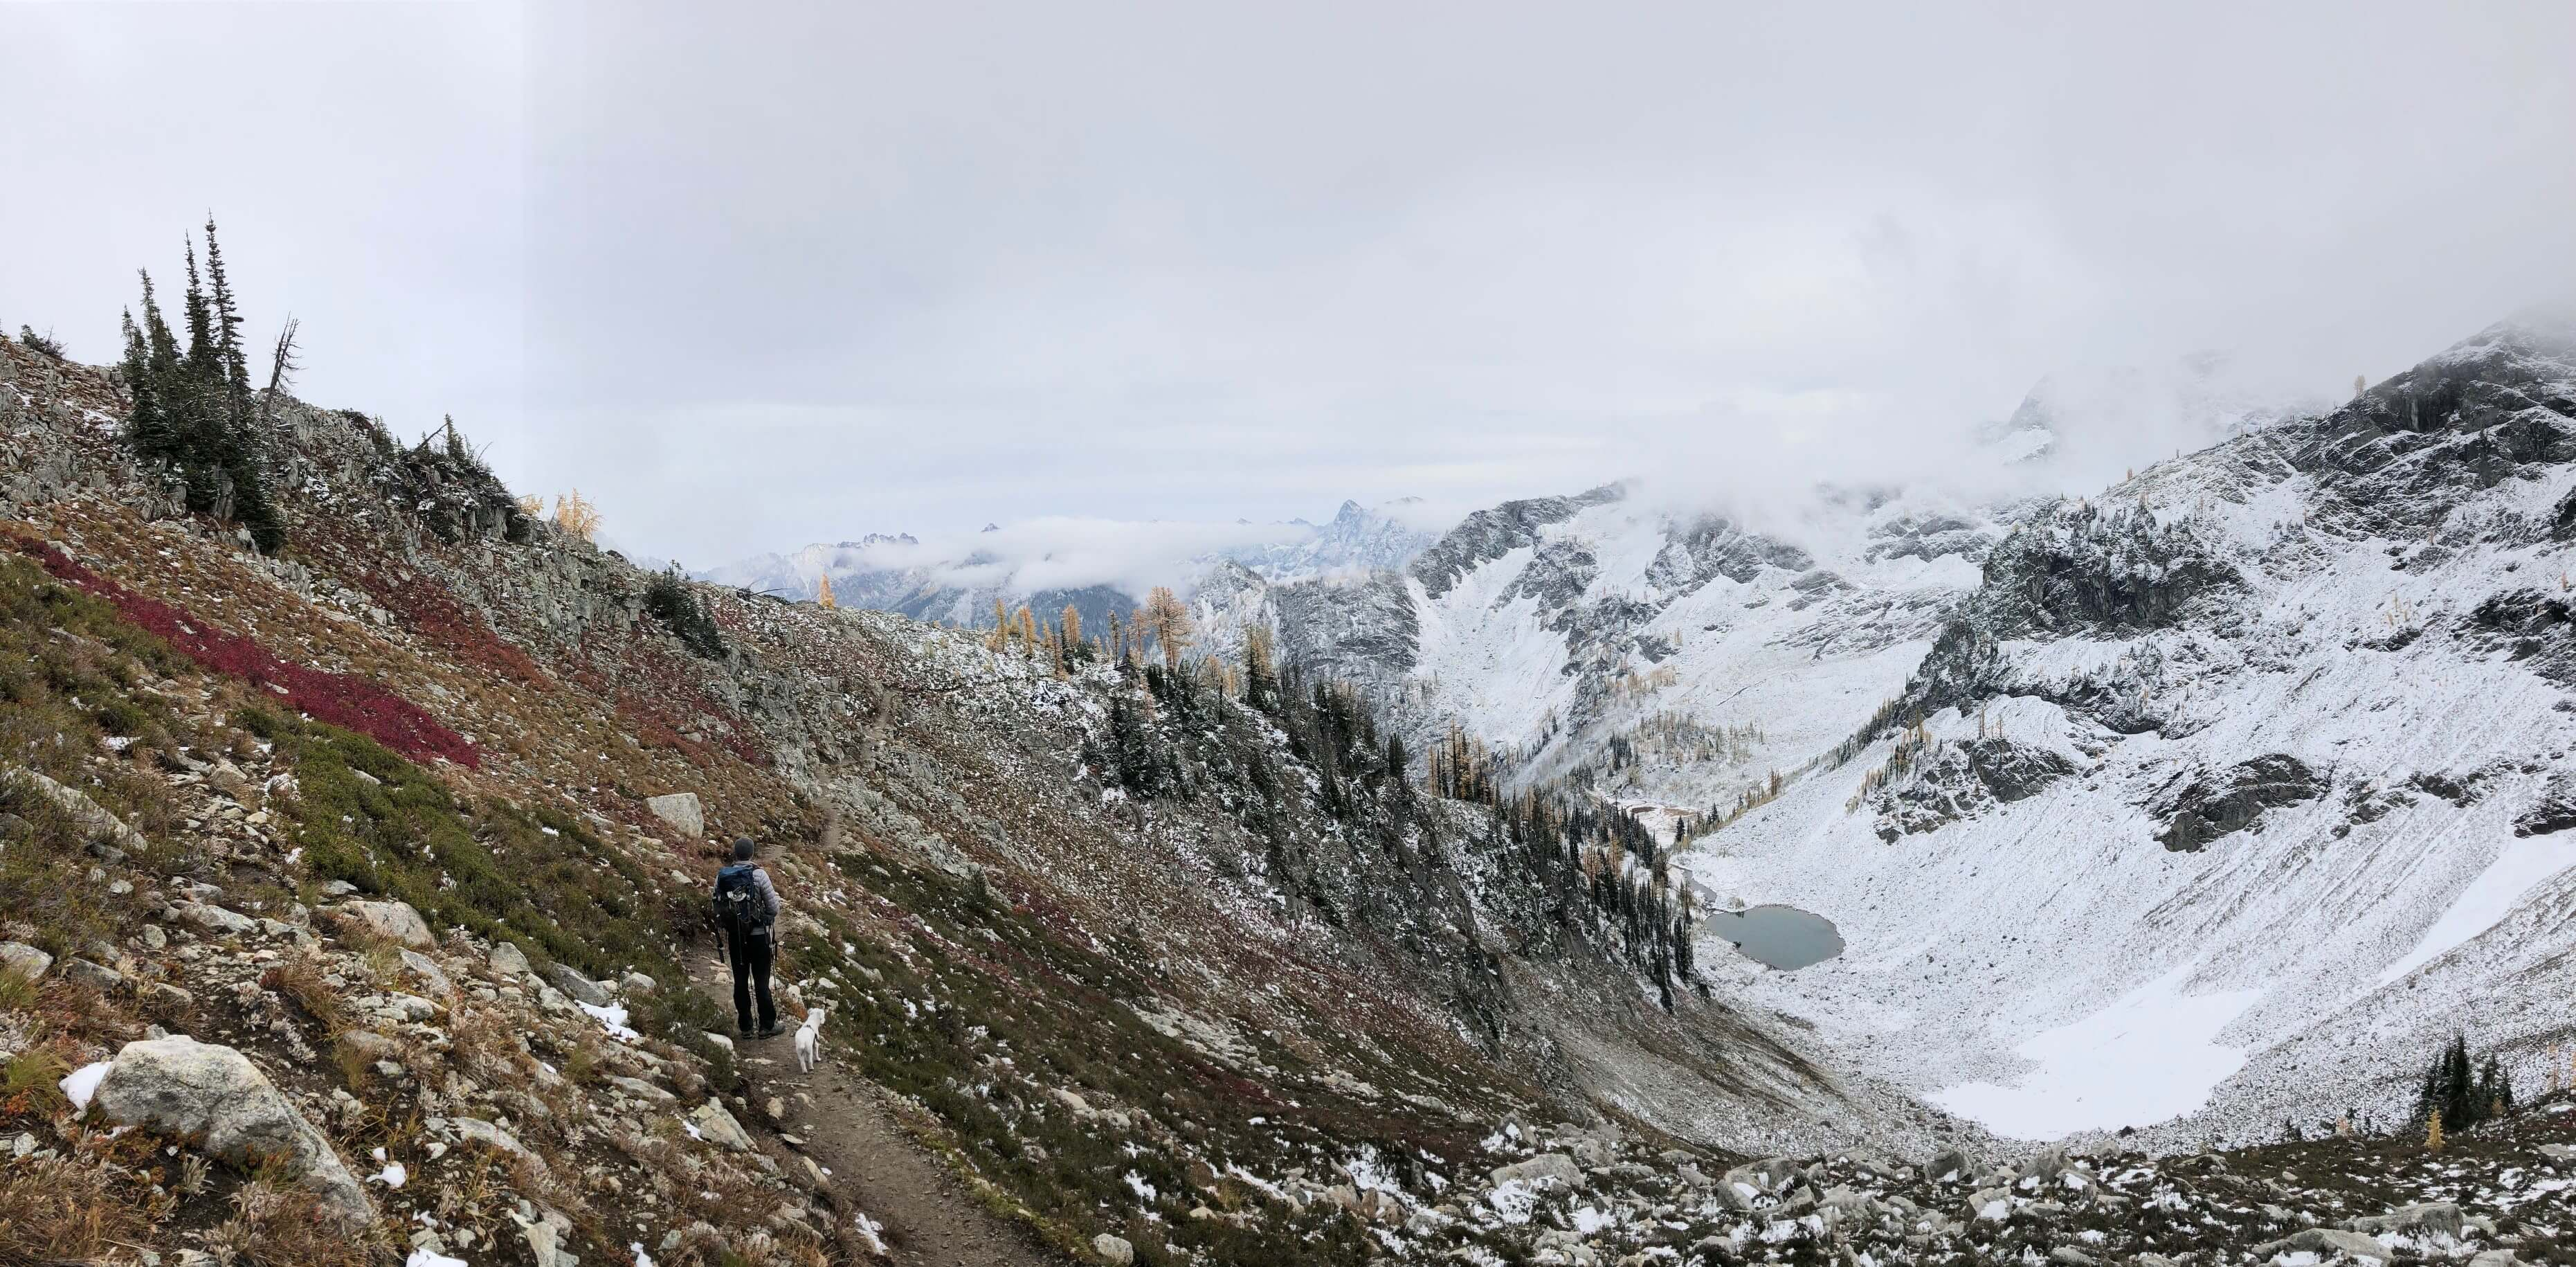 Maple Loop Trail in the North Cascades National Park